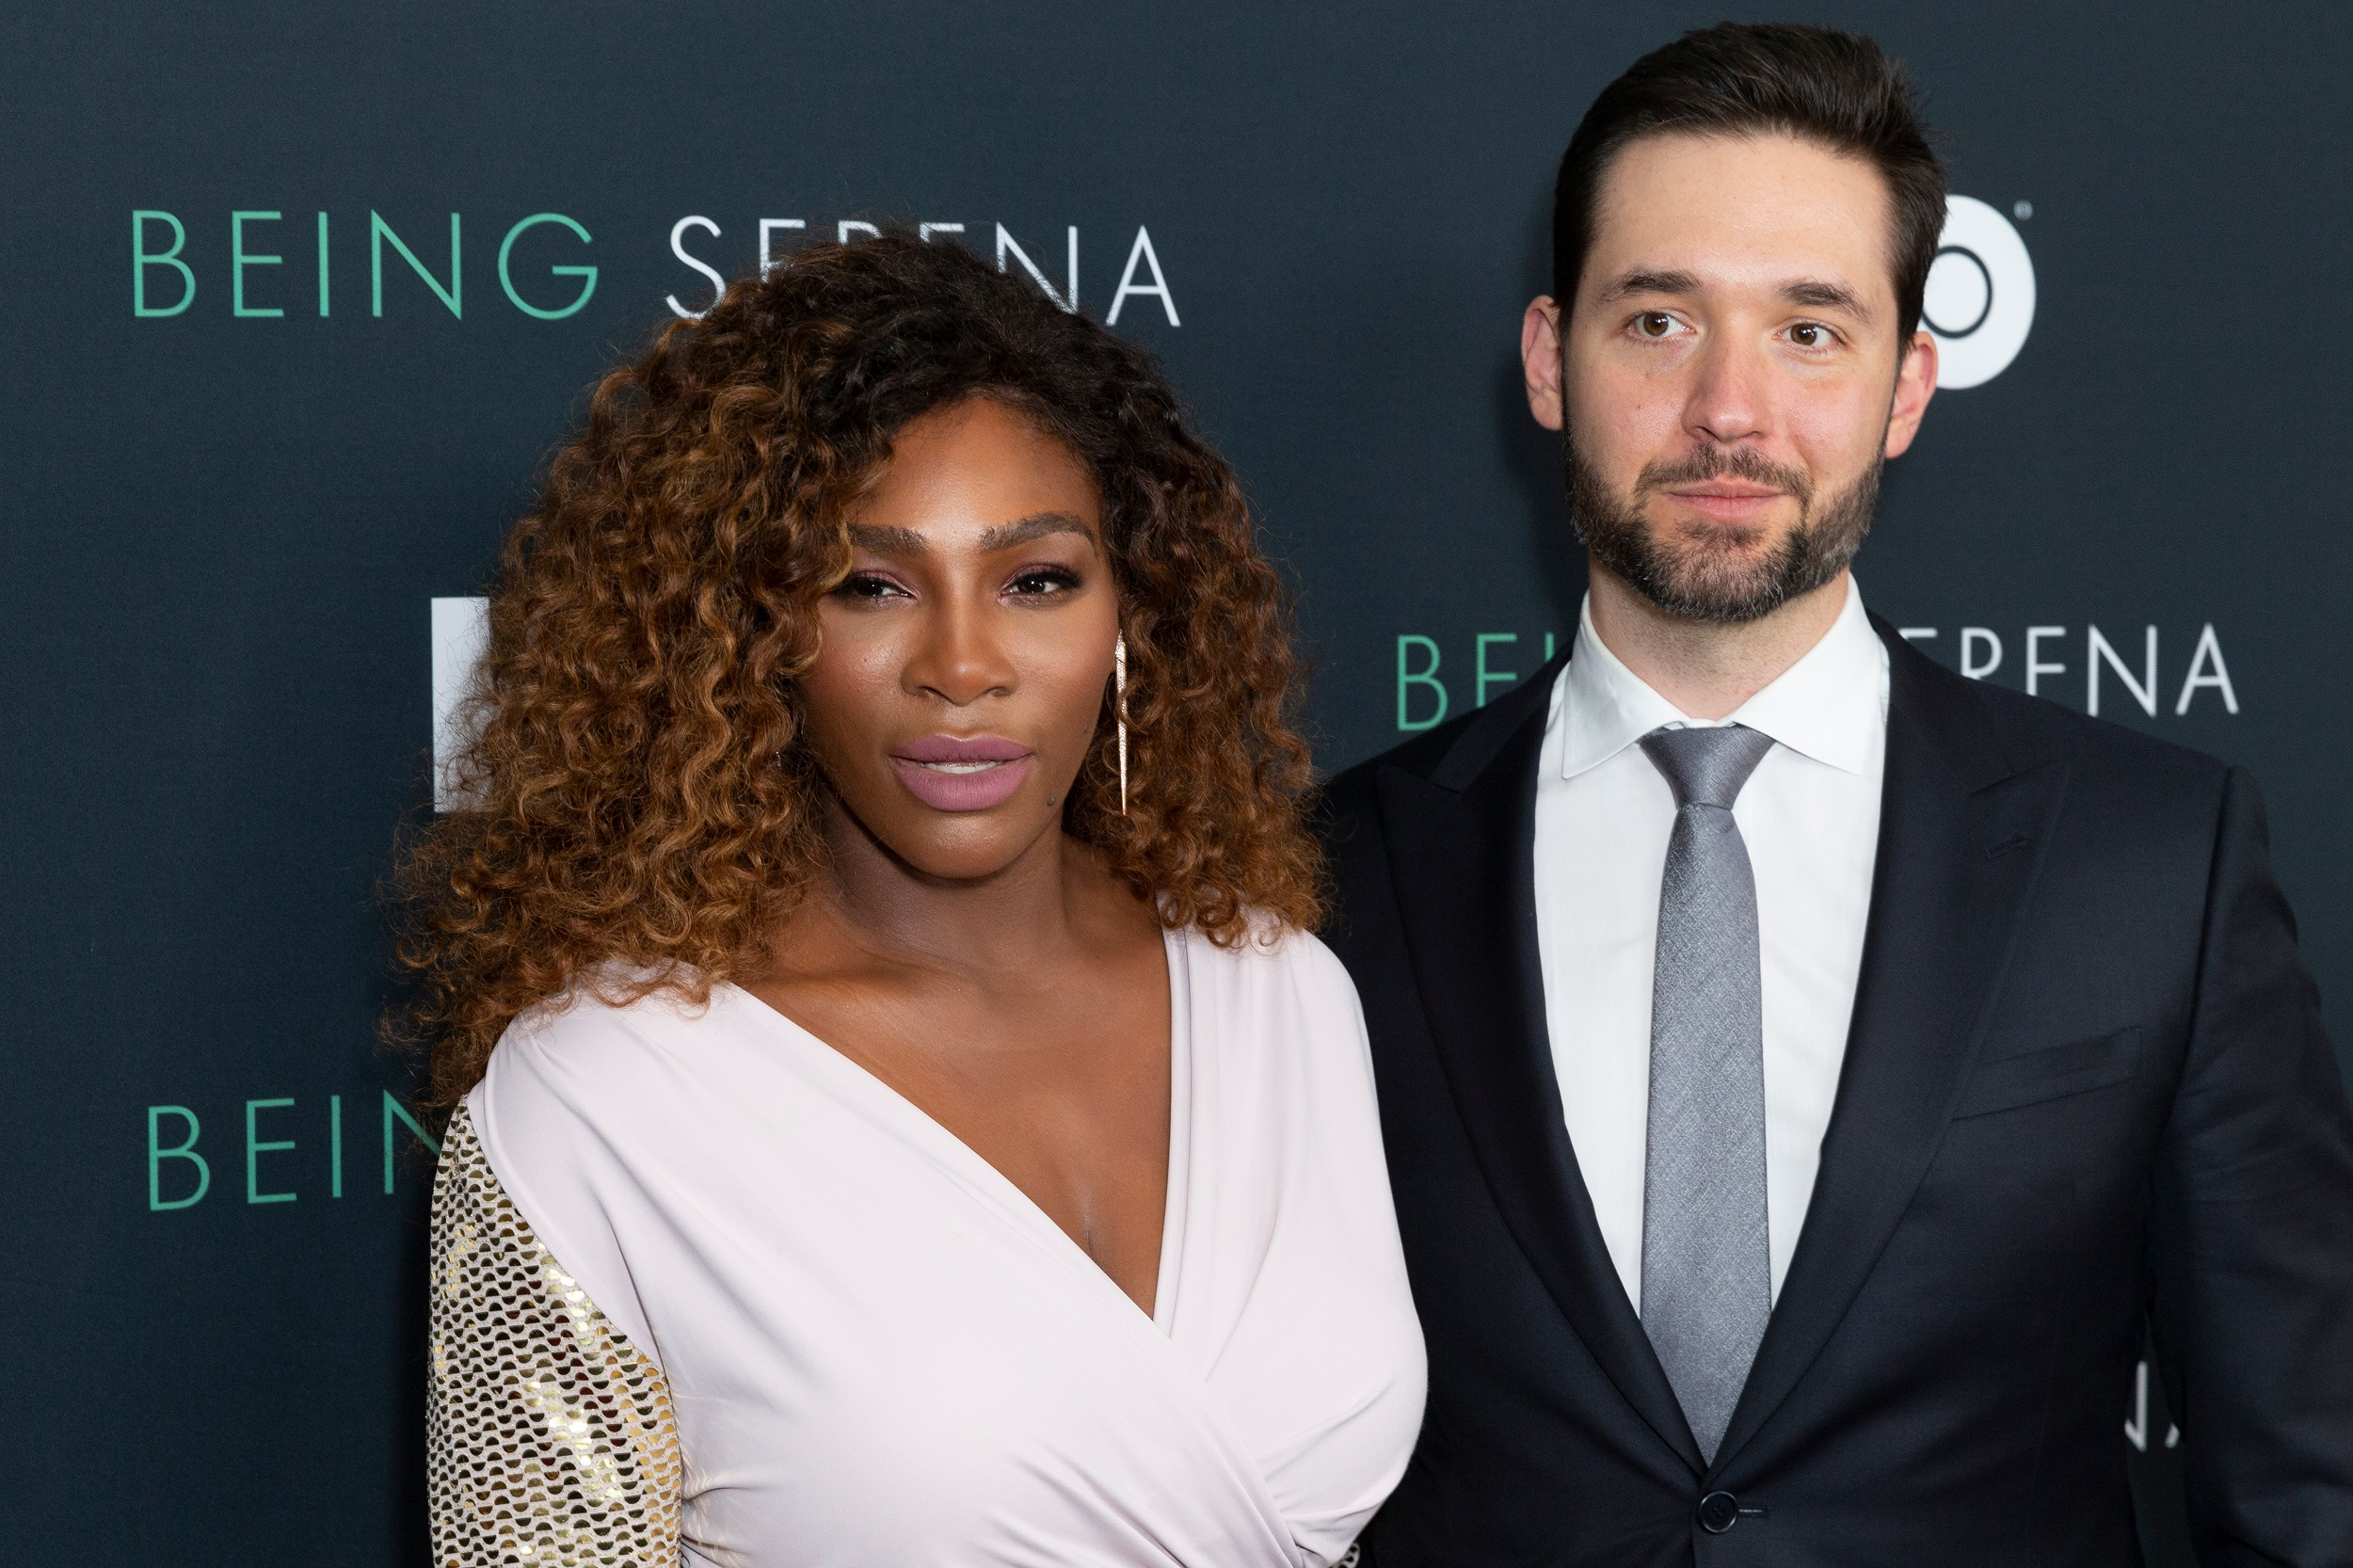 Serena Williams Says She 'Felt Like I Was Not a Good Mom' to Daughter Alexis Olympia